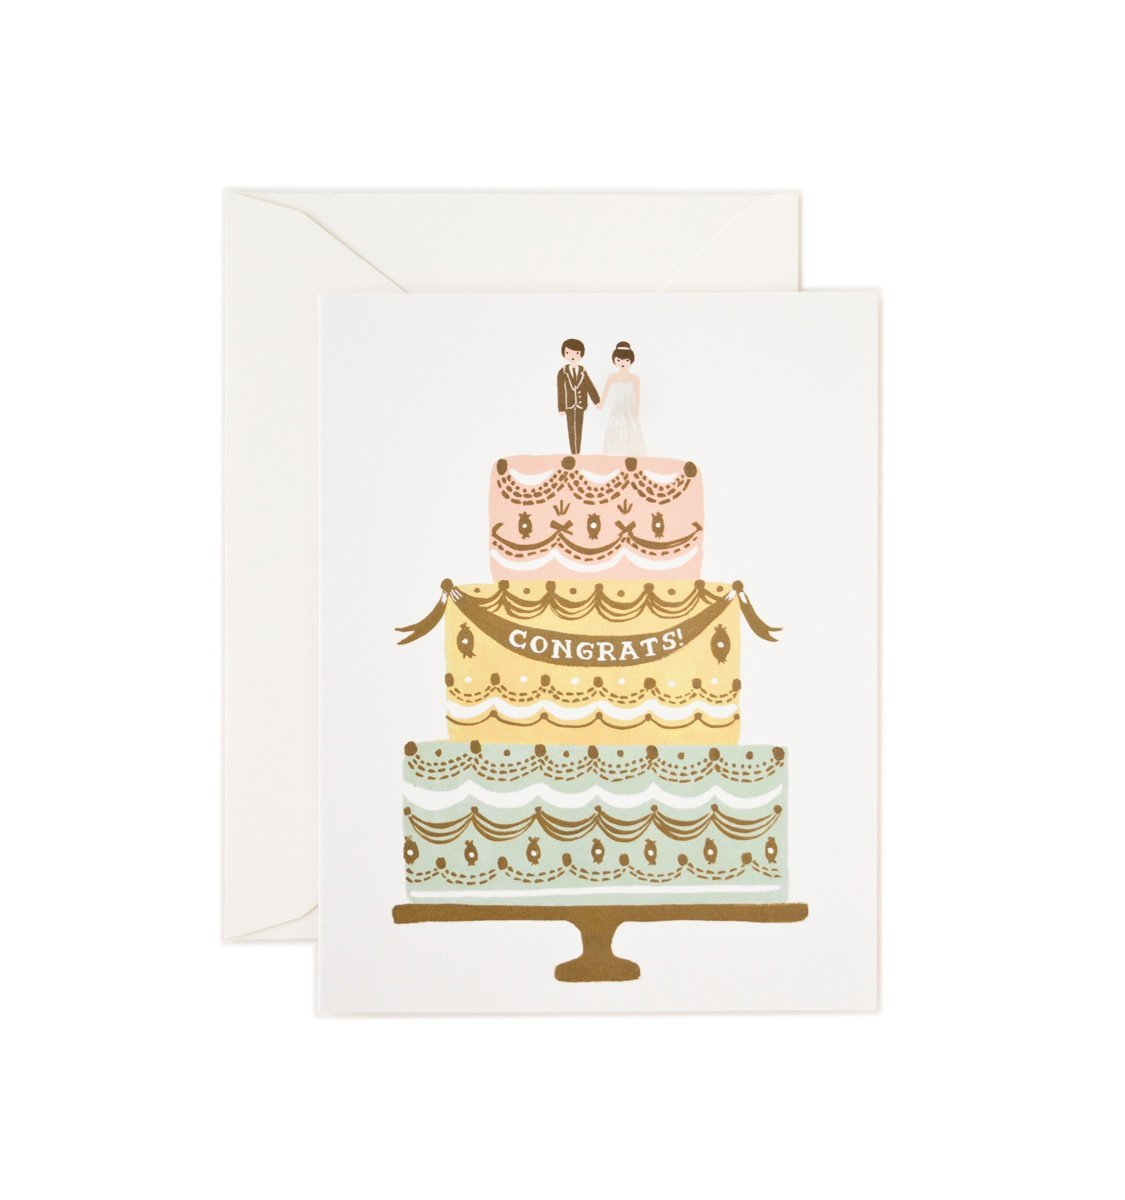 Kort, Congrats Wedding Cake - Posh Living